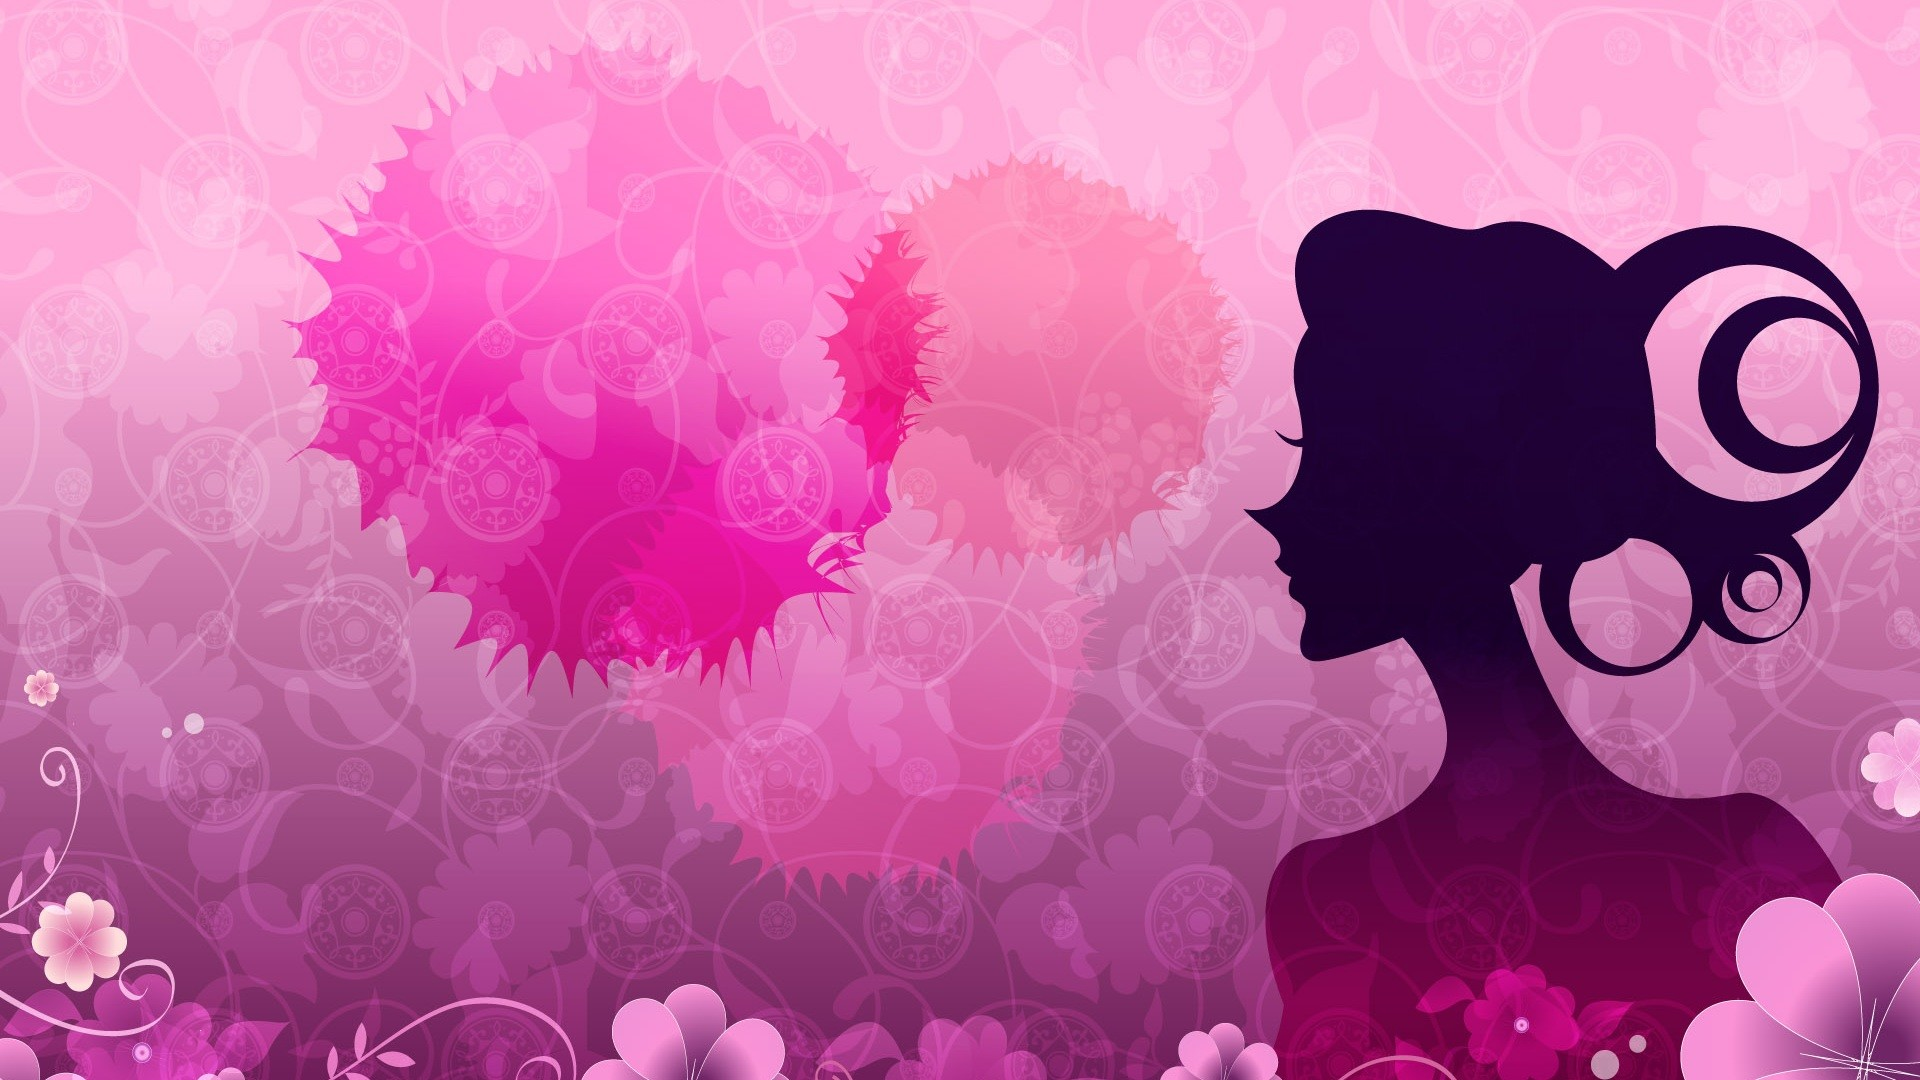 Popular Girly Wallpapers Wide with High Definition Wallpaper Resolution  px 364.71 KB Other Cute Girly